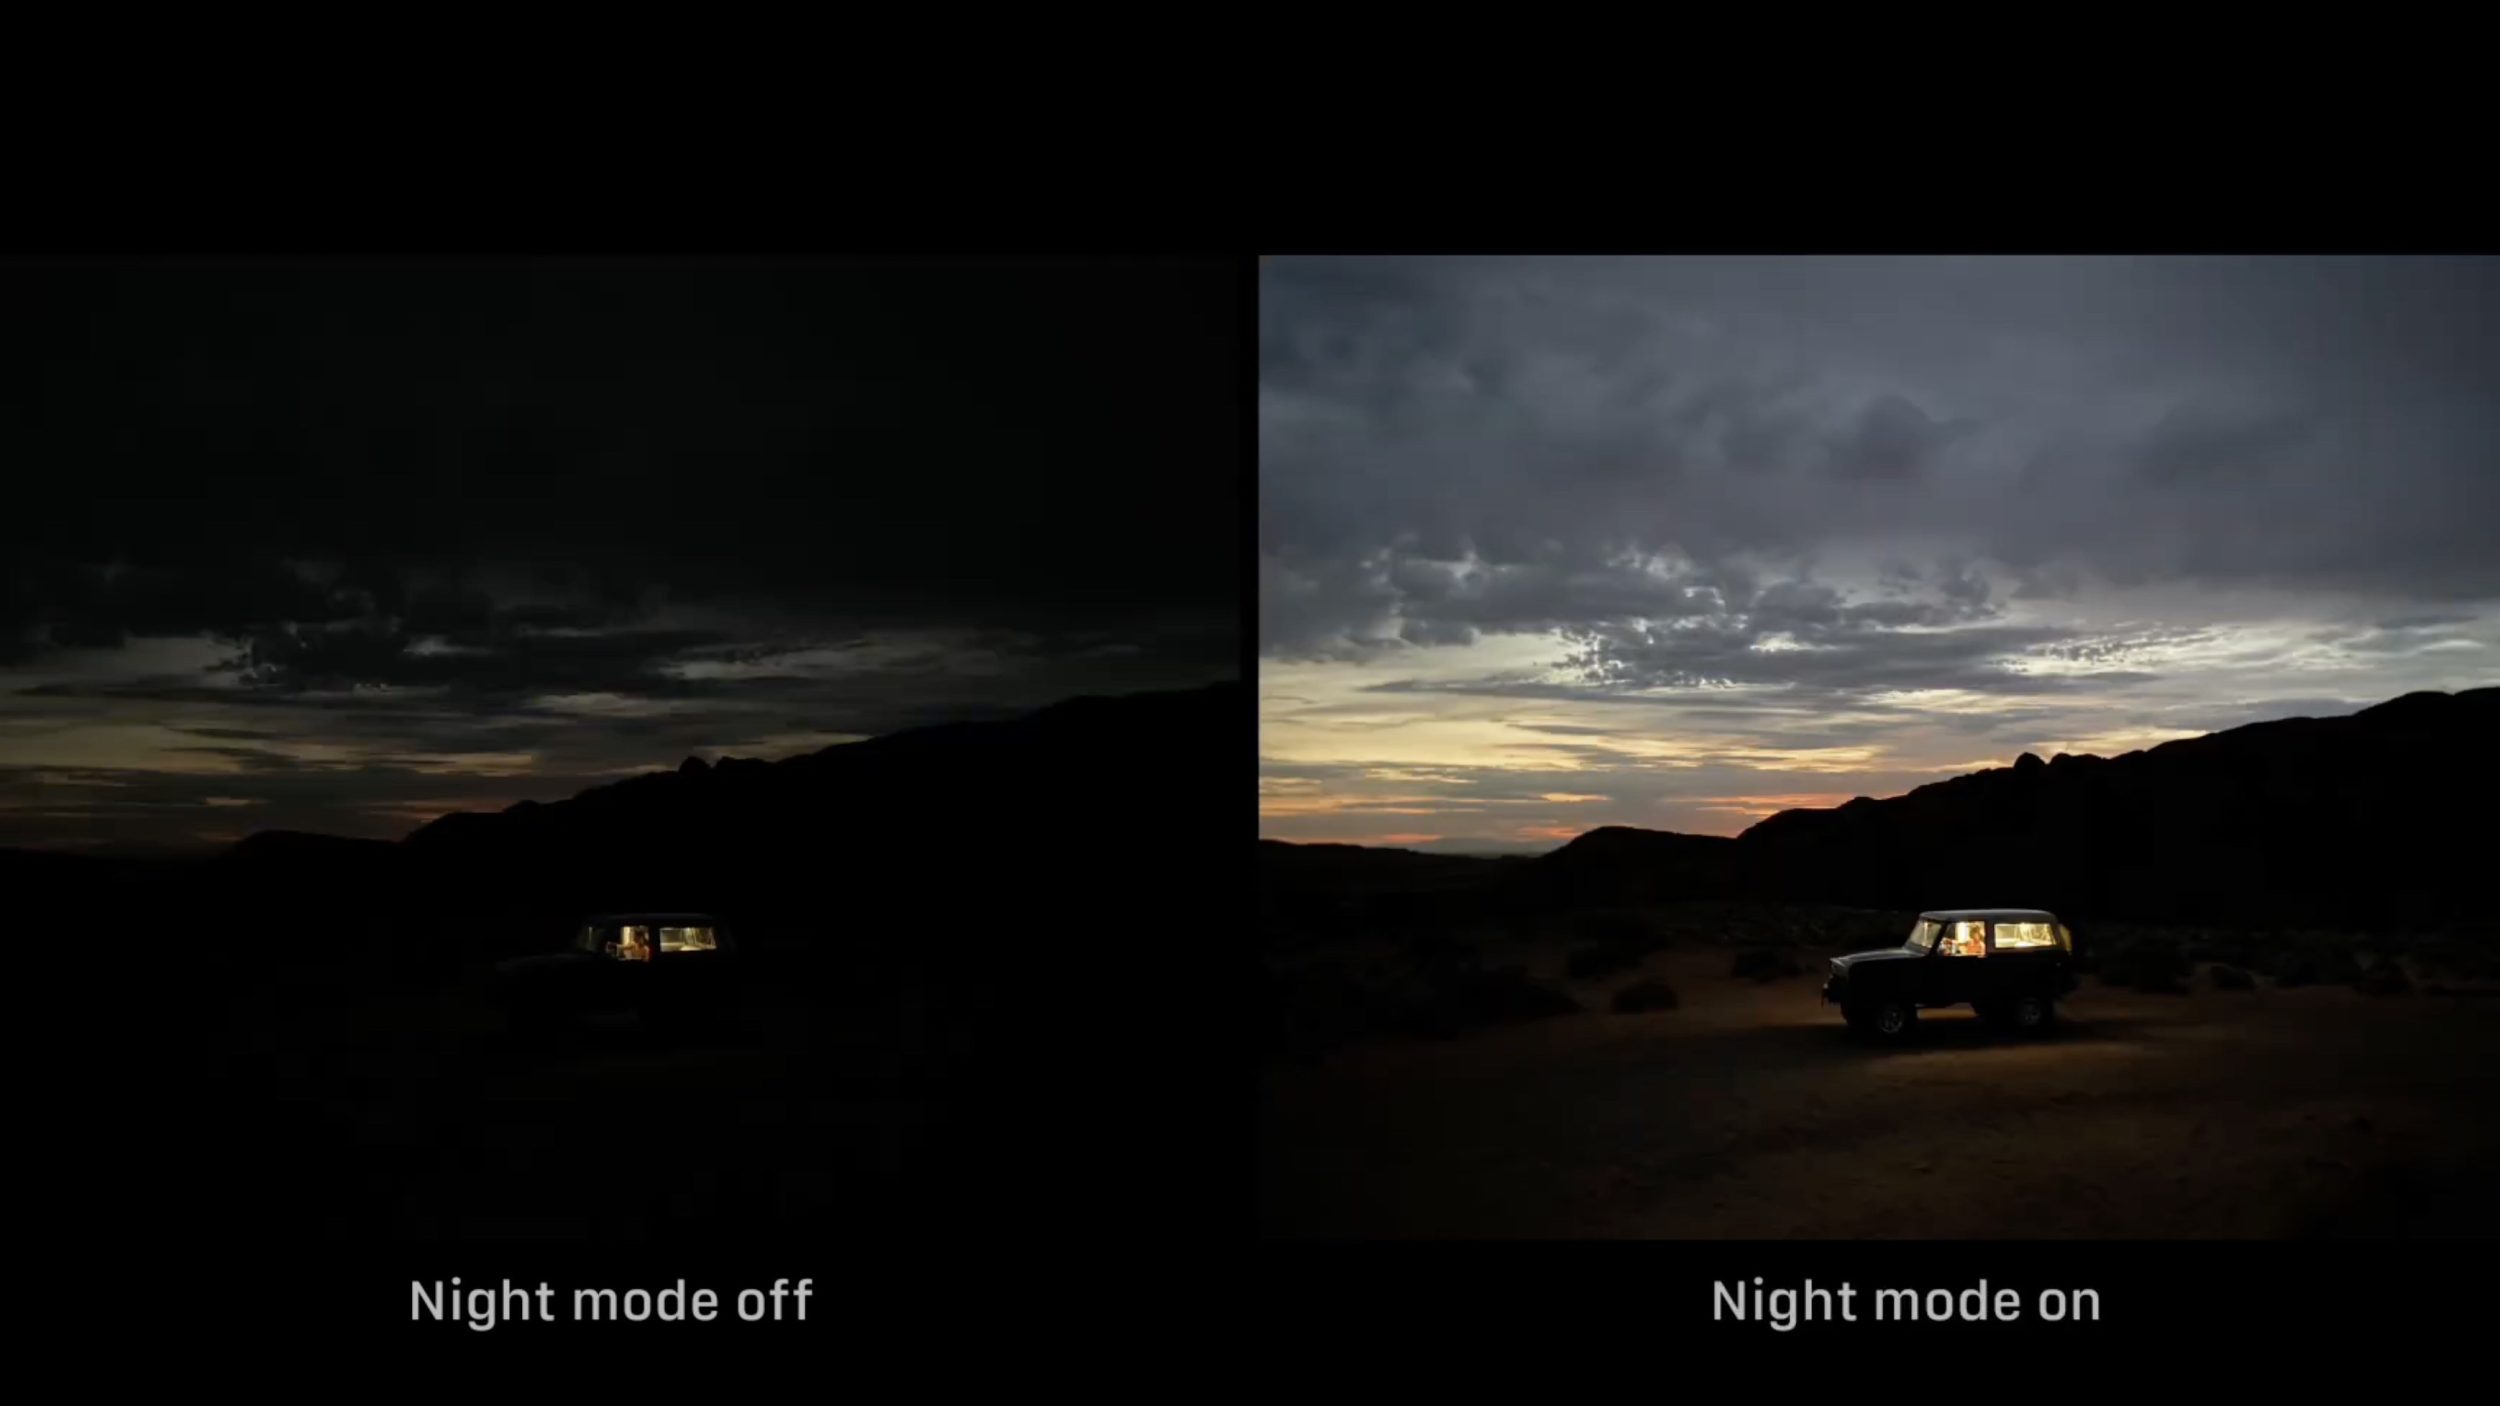 iPhone 11 Pro and 11 Night Mode Featured in Apple's Newest Video